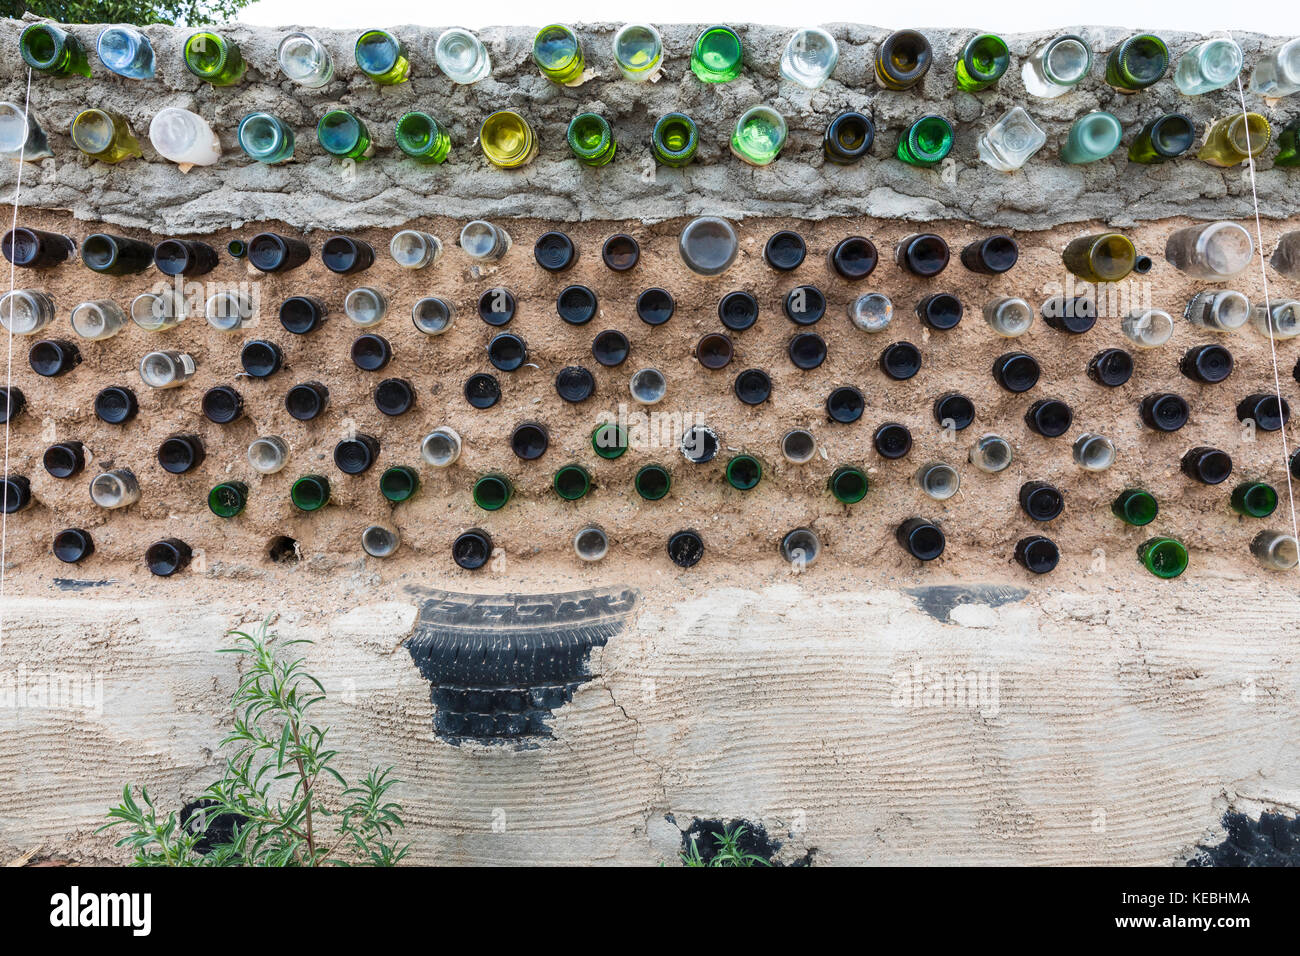 Glass bottles and recycled materials used to construct a wall, Greater World Earthship Community, Near Taos, New - Stock Image